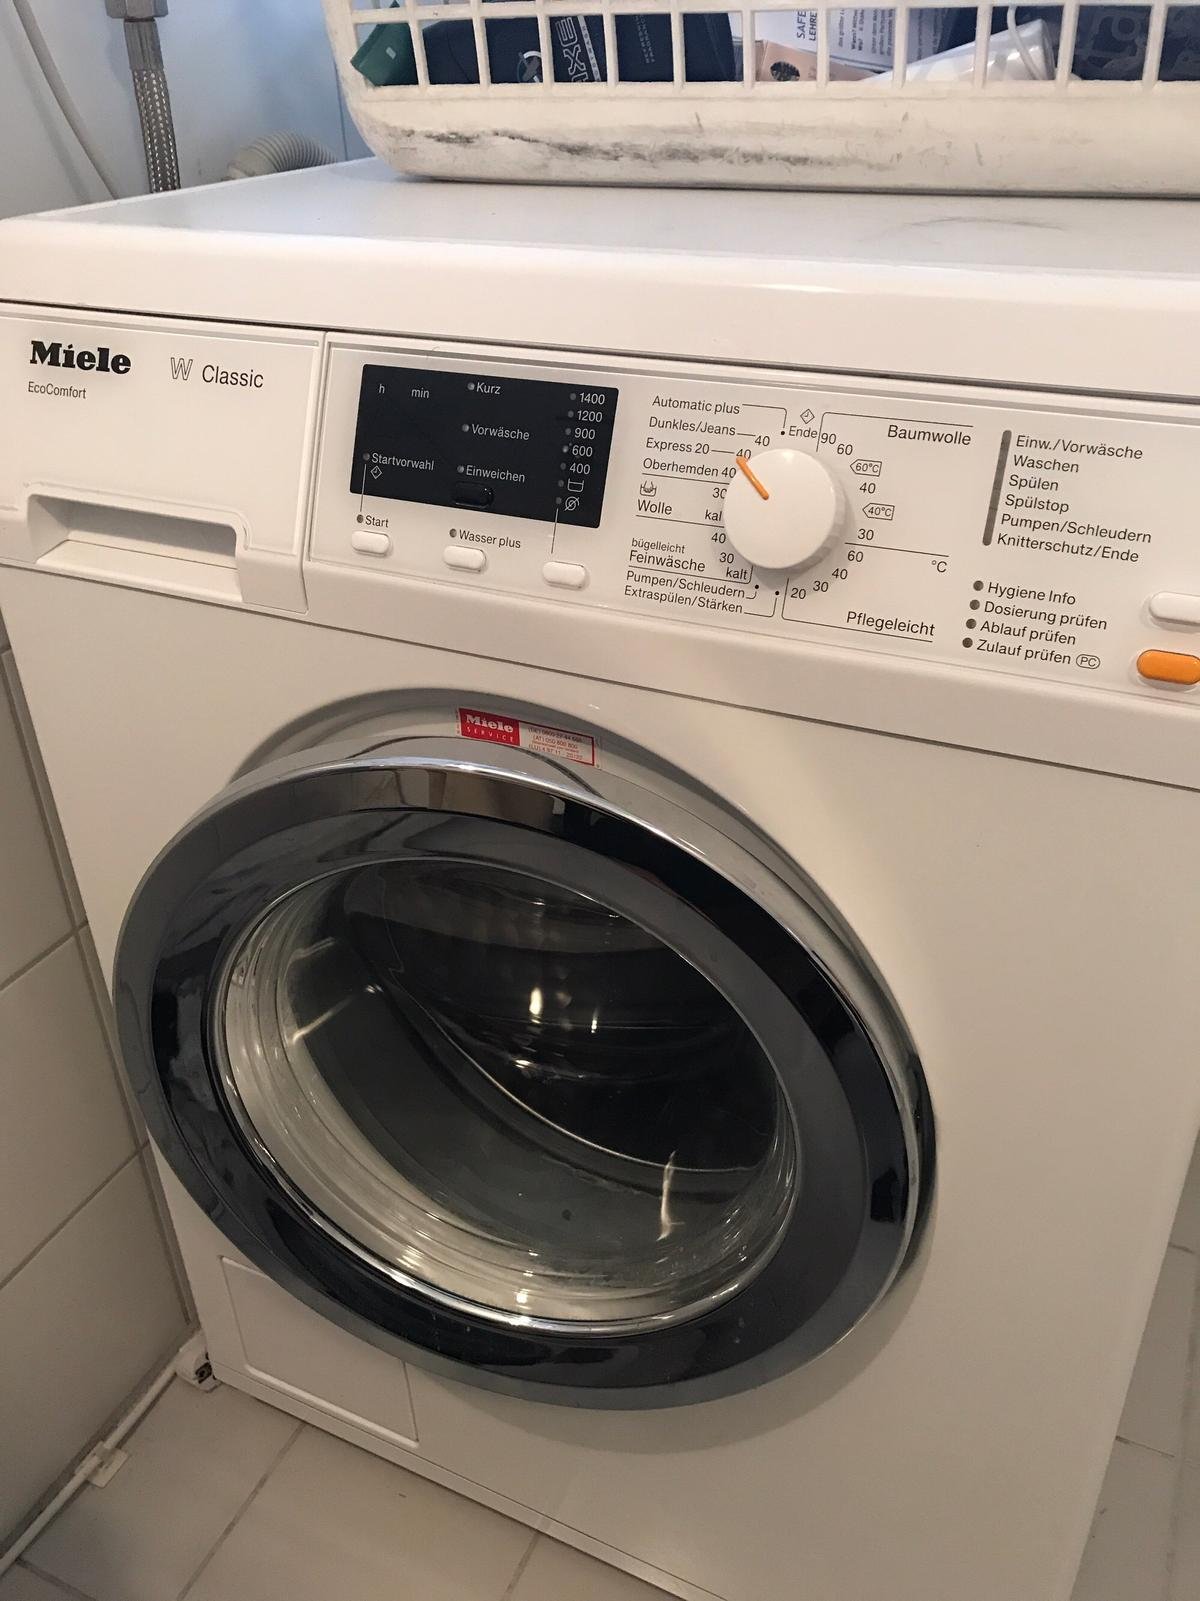 Wonderbaarlijk Miele W Classic Waschmaschine in 6866 for €500.00 for sale - Shpock EJ-27